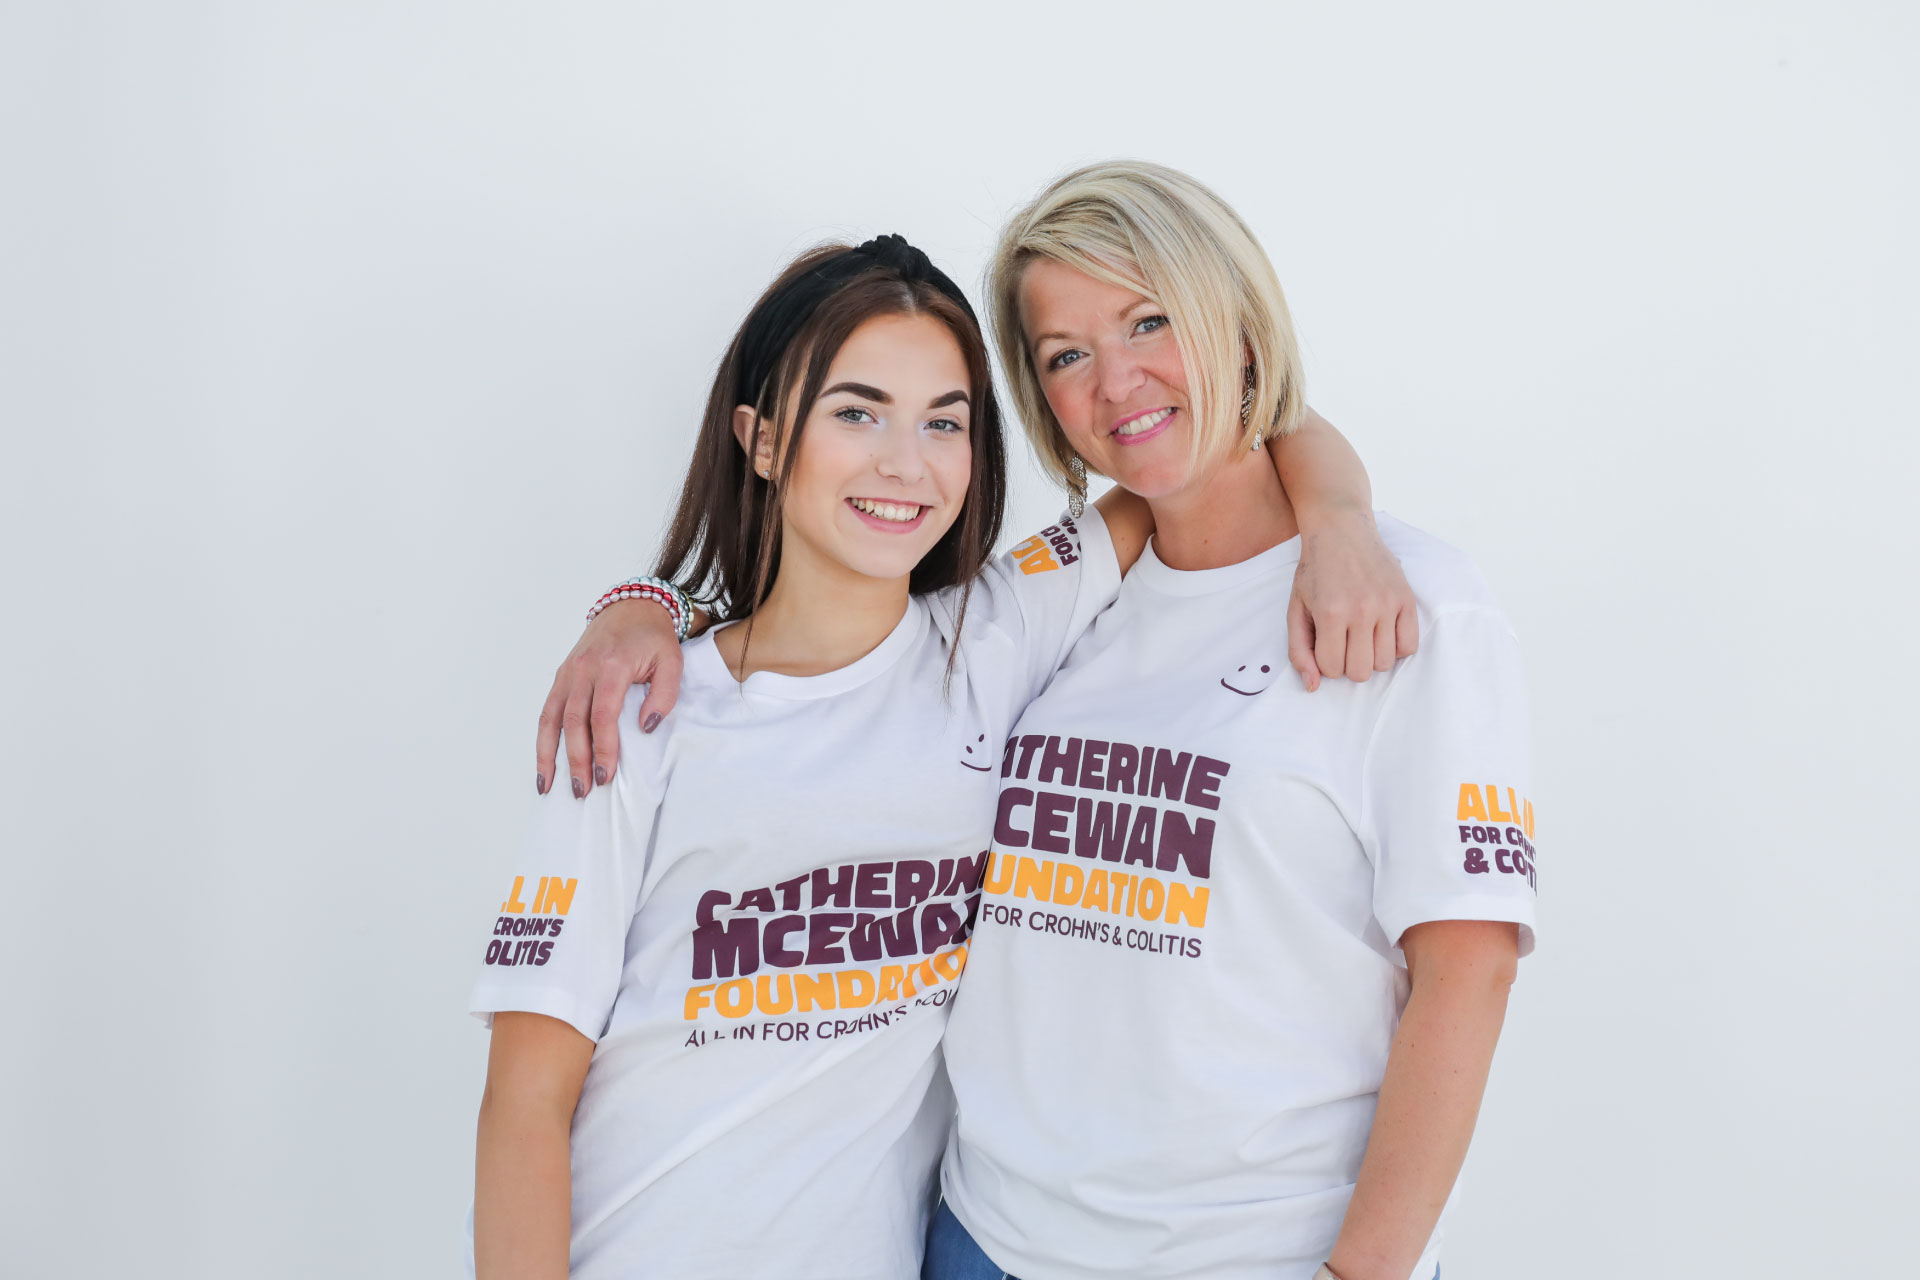 Catherine McEwan Foundation